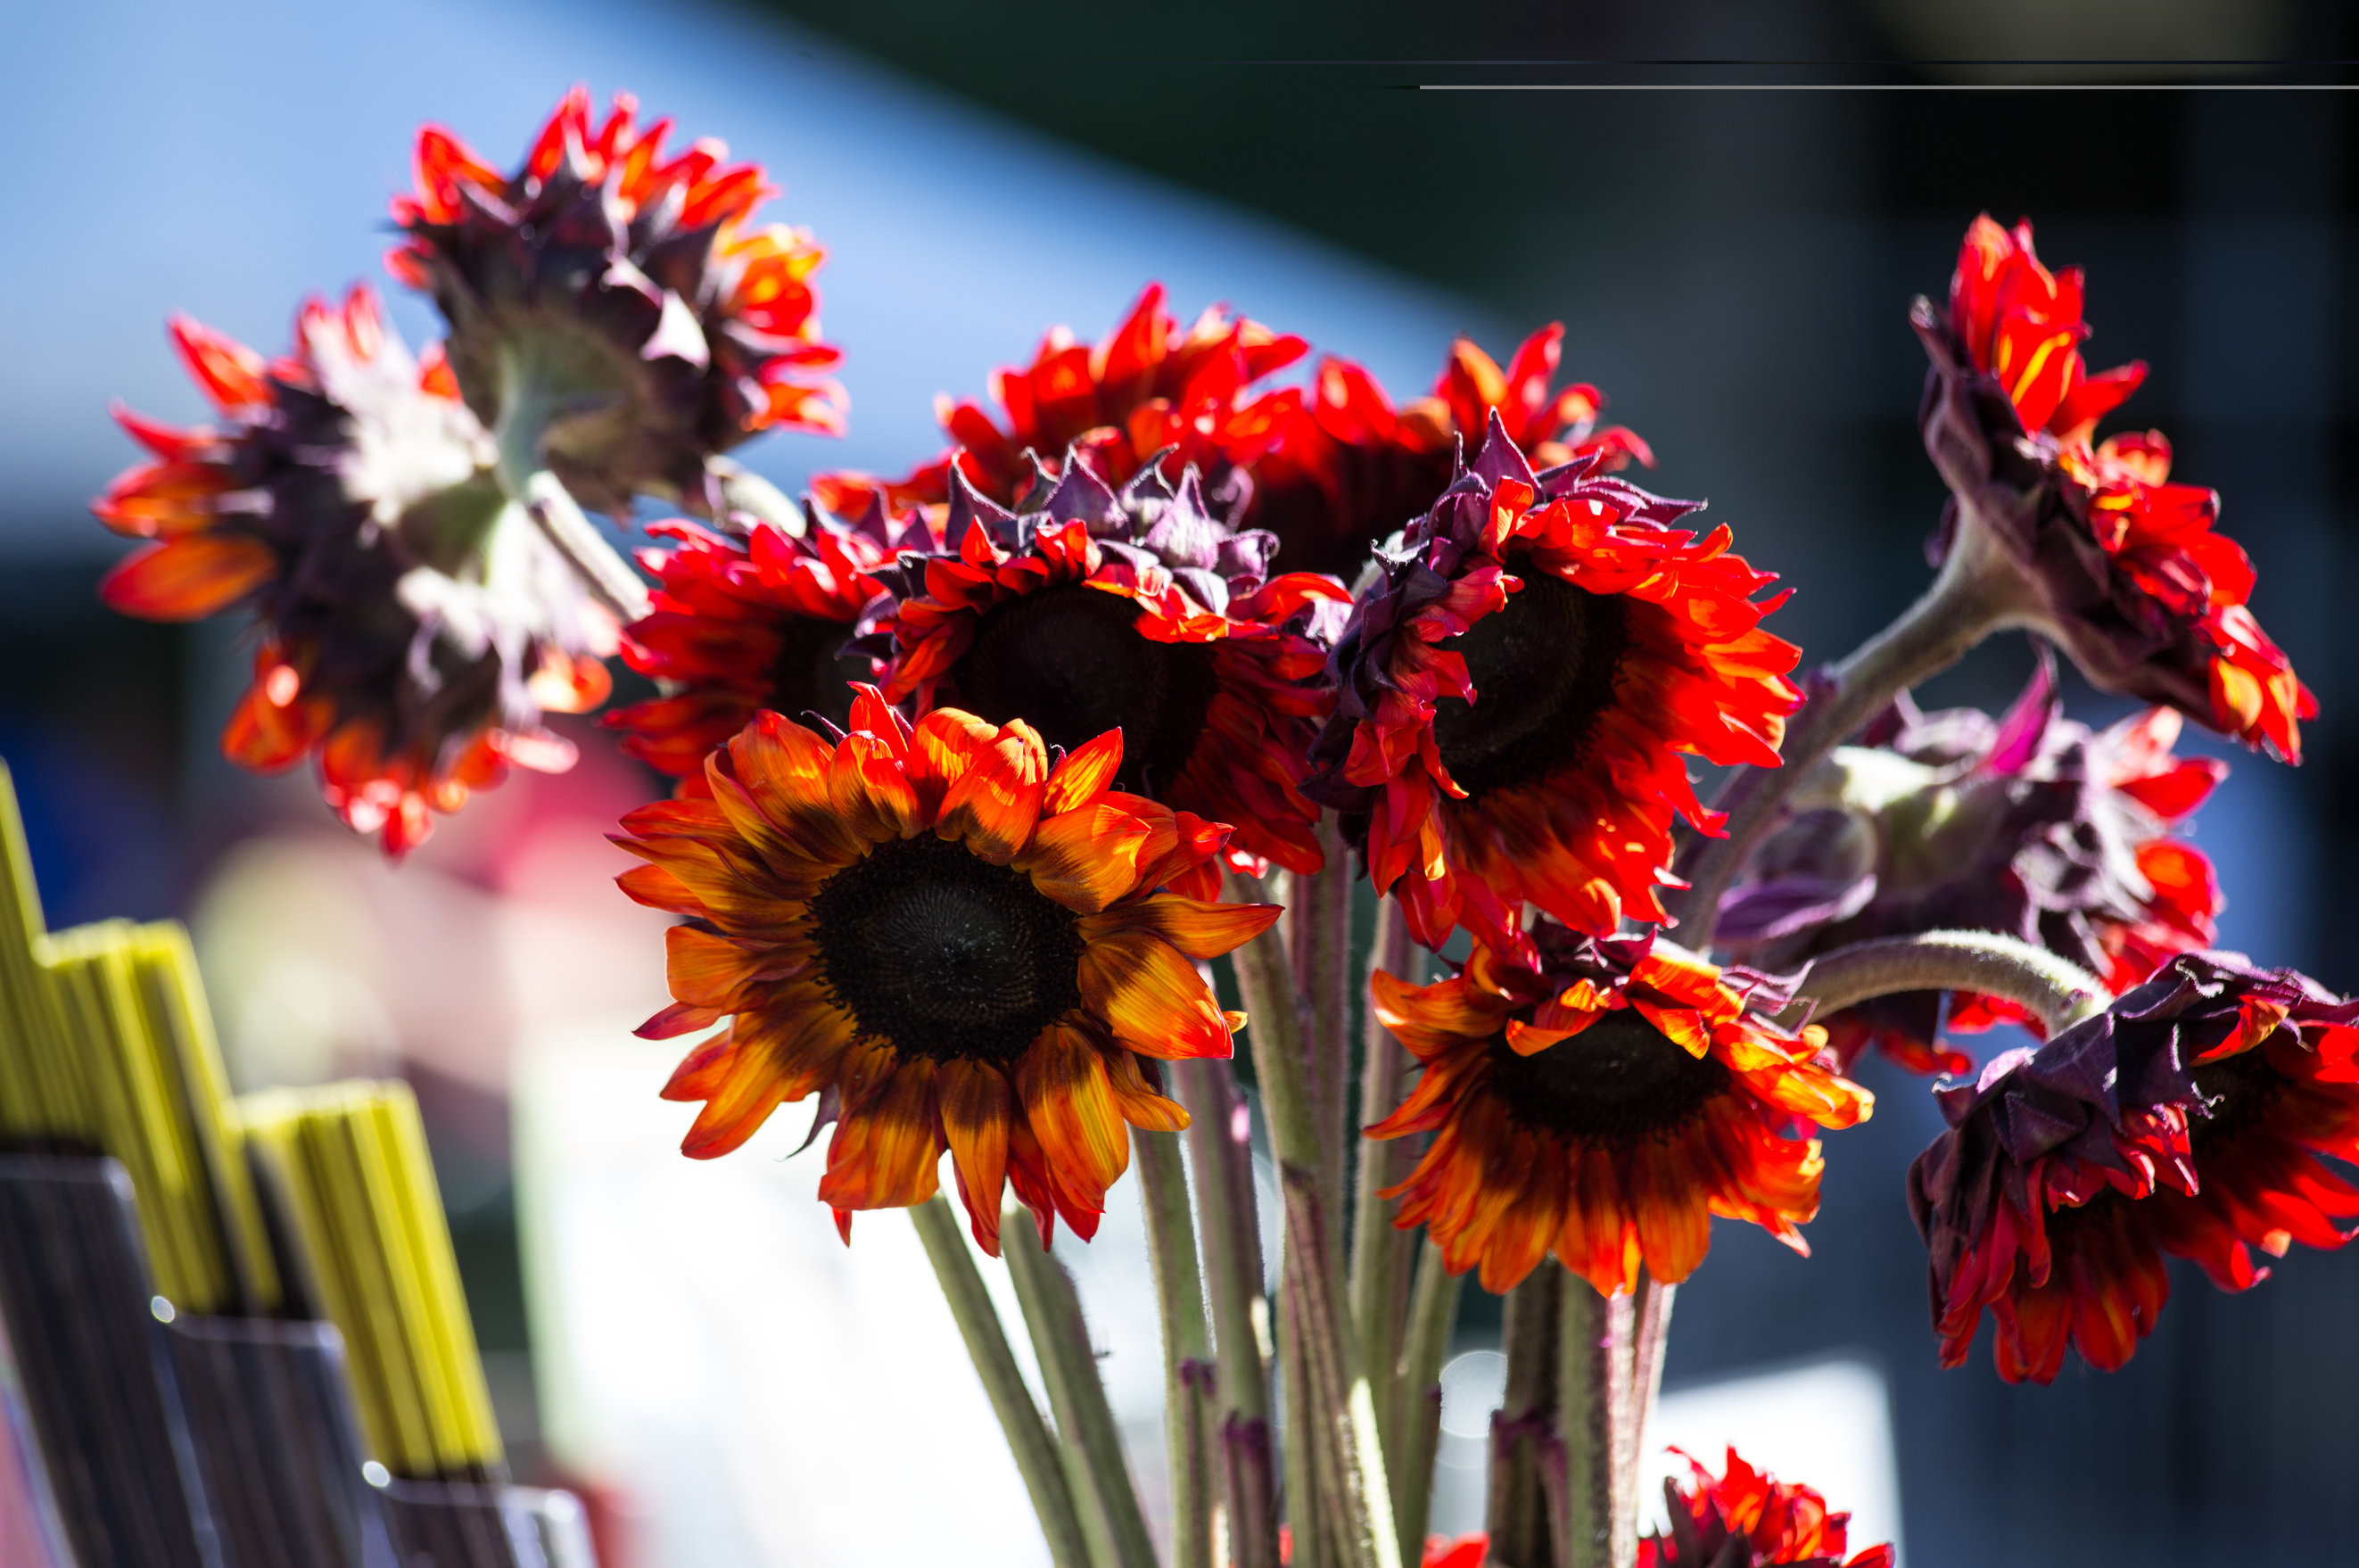 Red sunflower photos